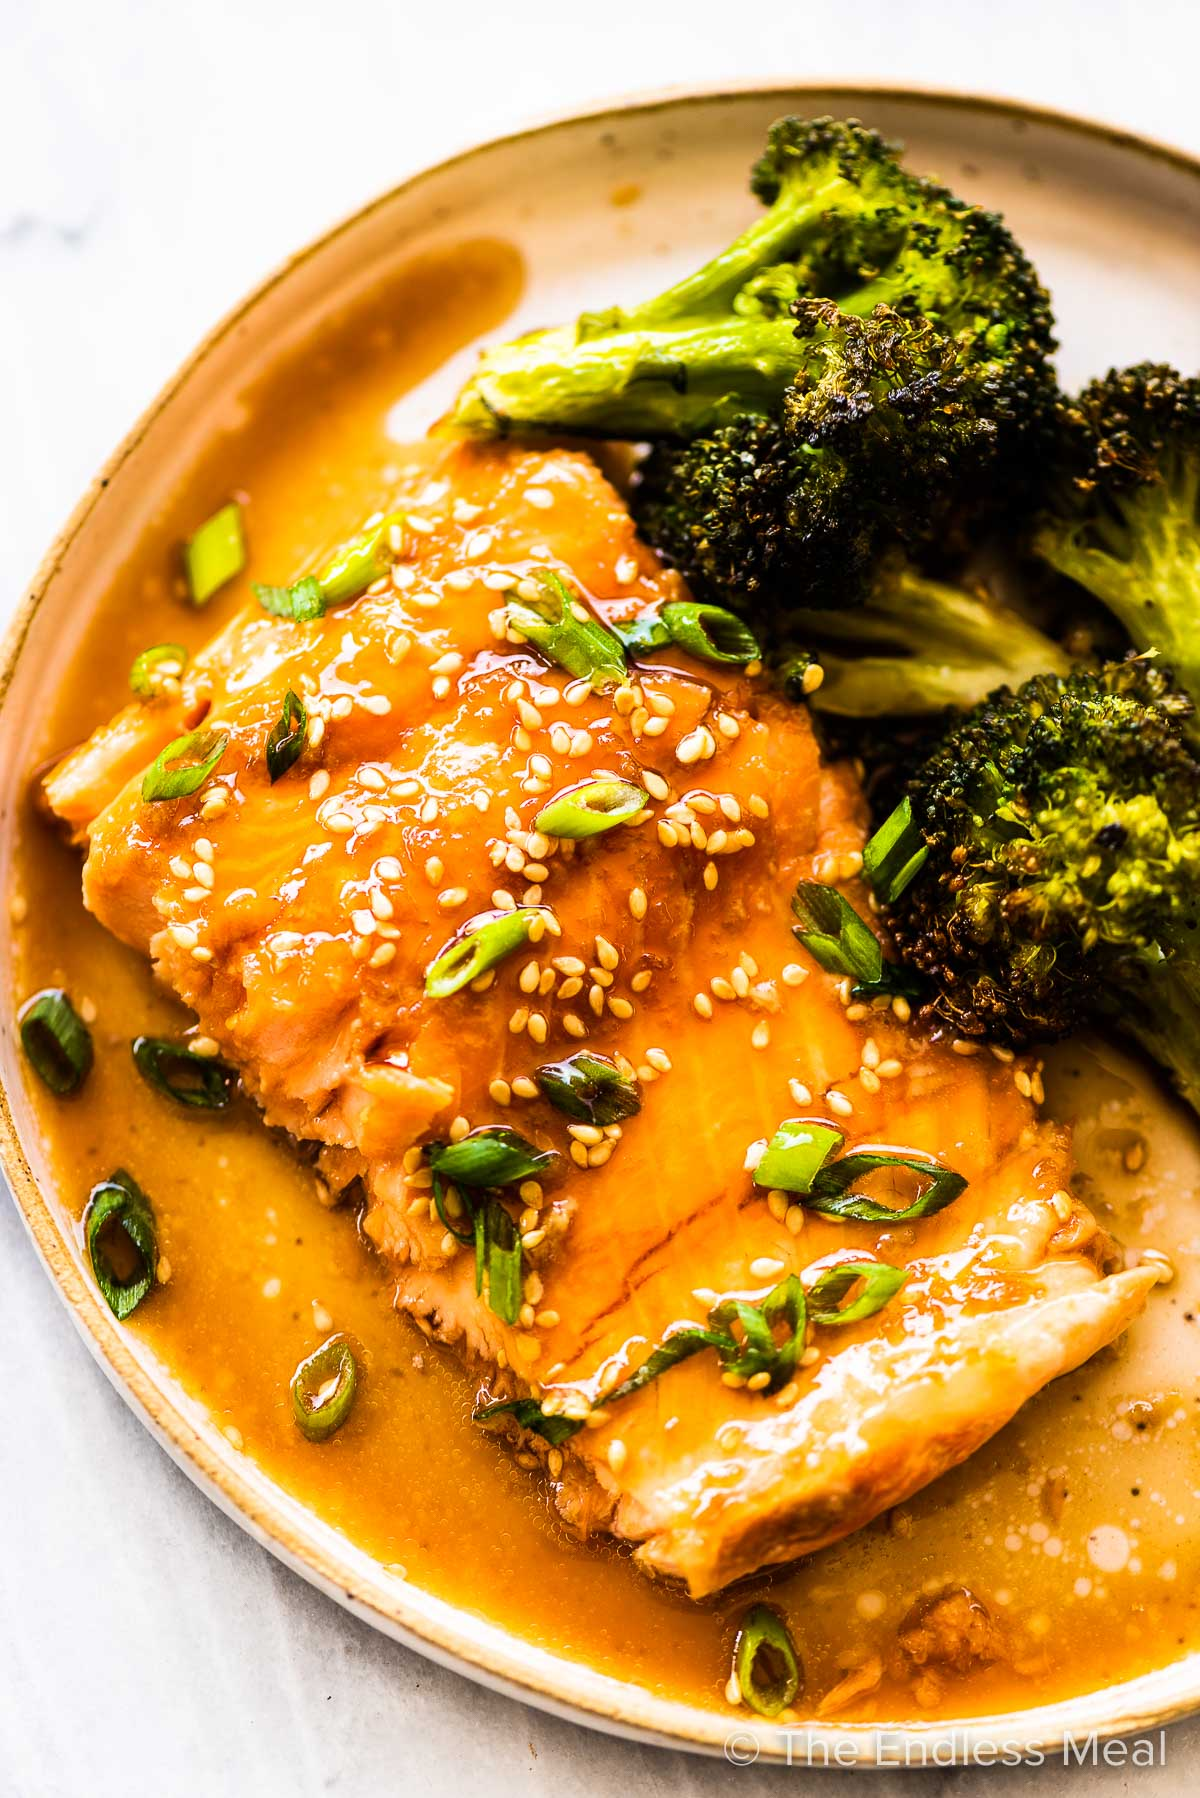 Glazed Asian salmon in a dinner plate with broccoli on the side/